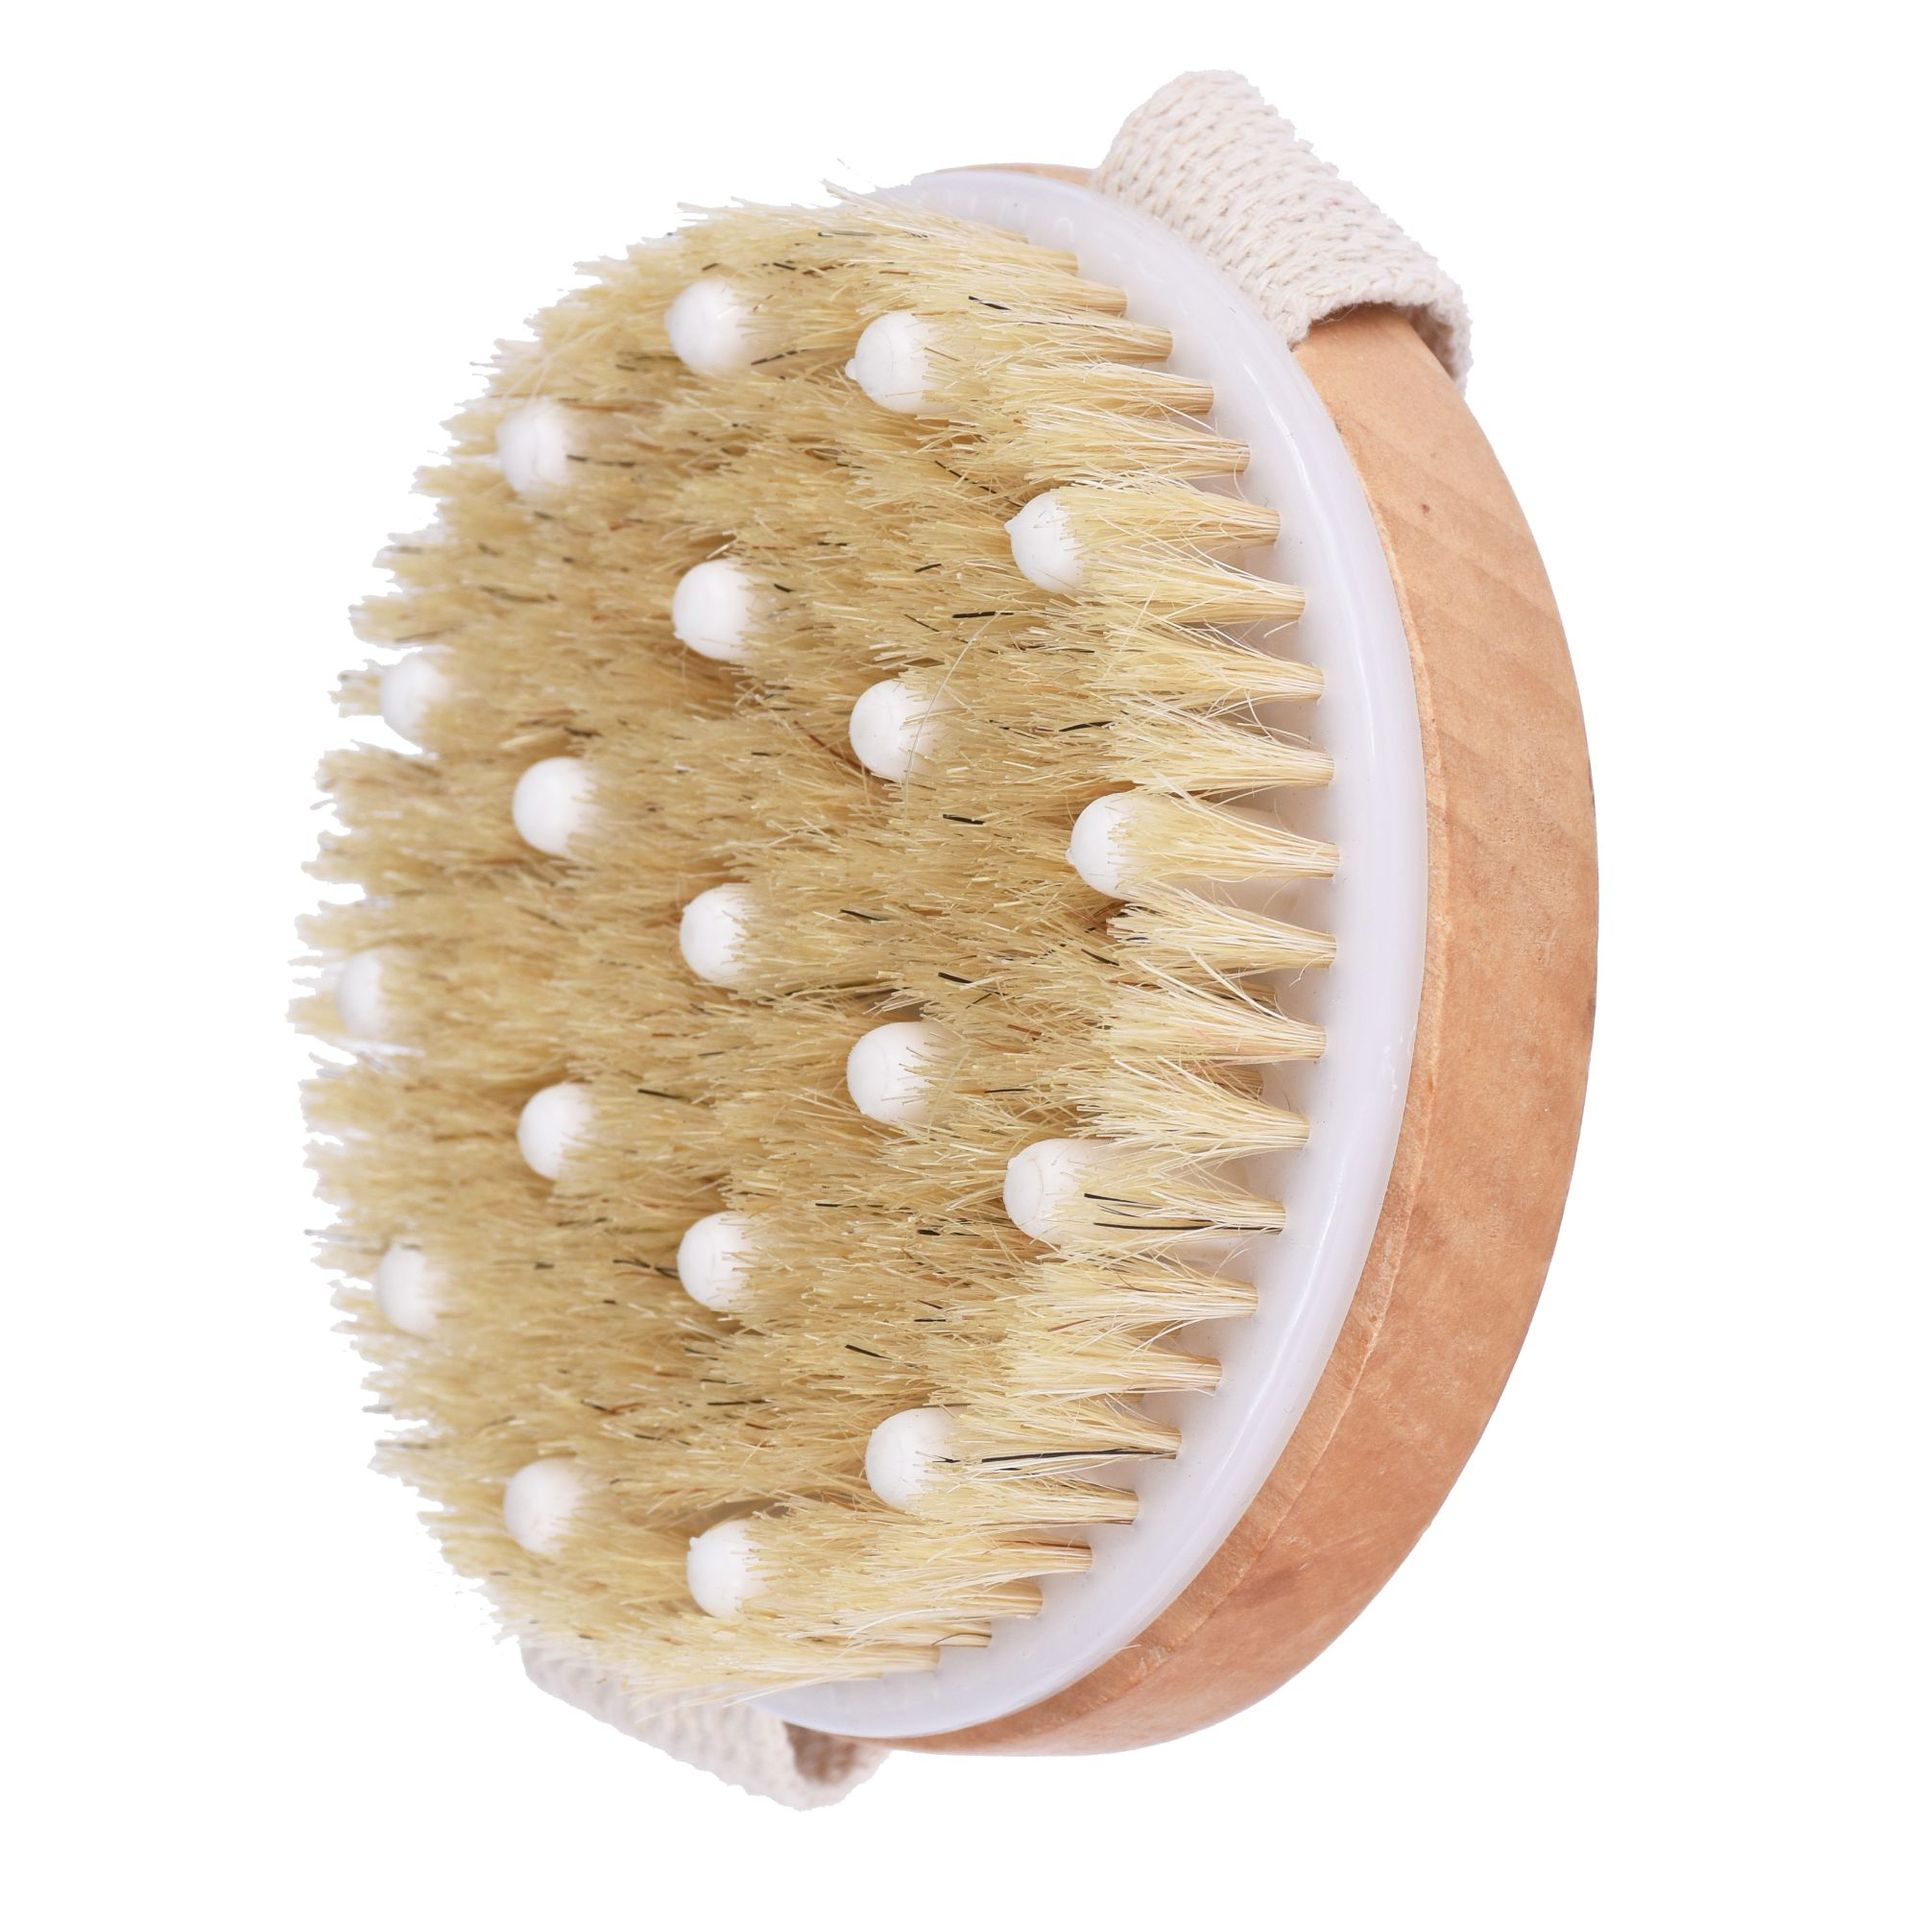 SPA brush wooden (1).jpg